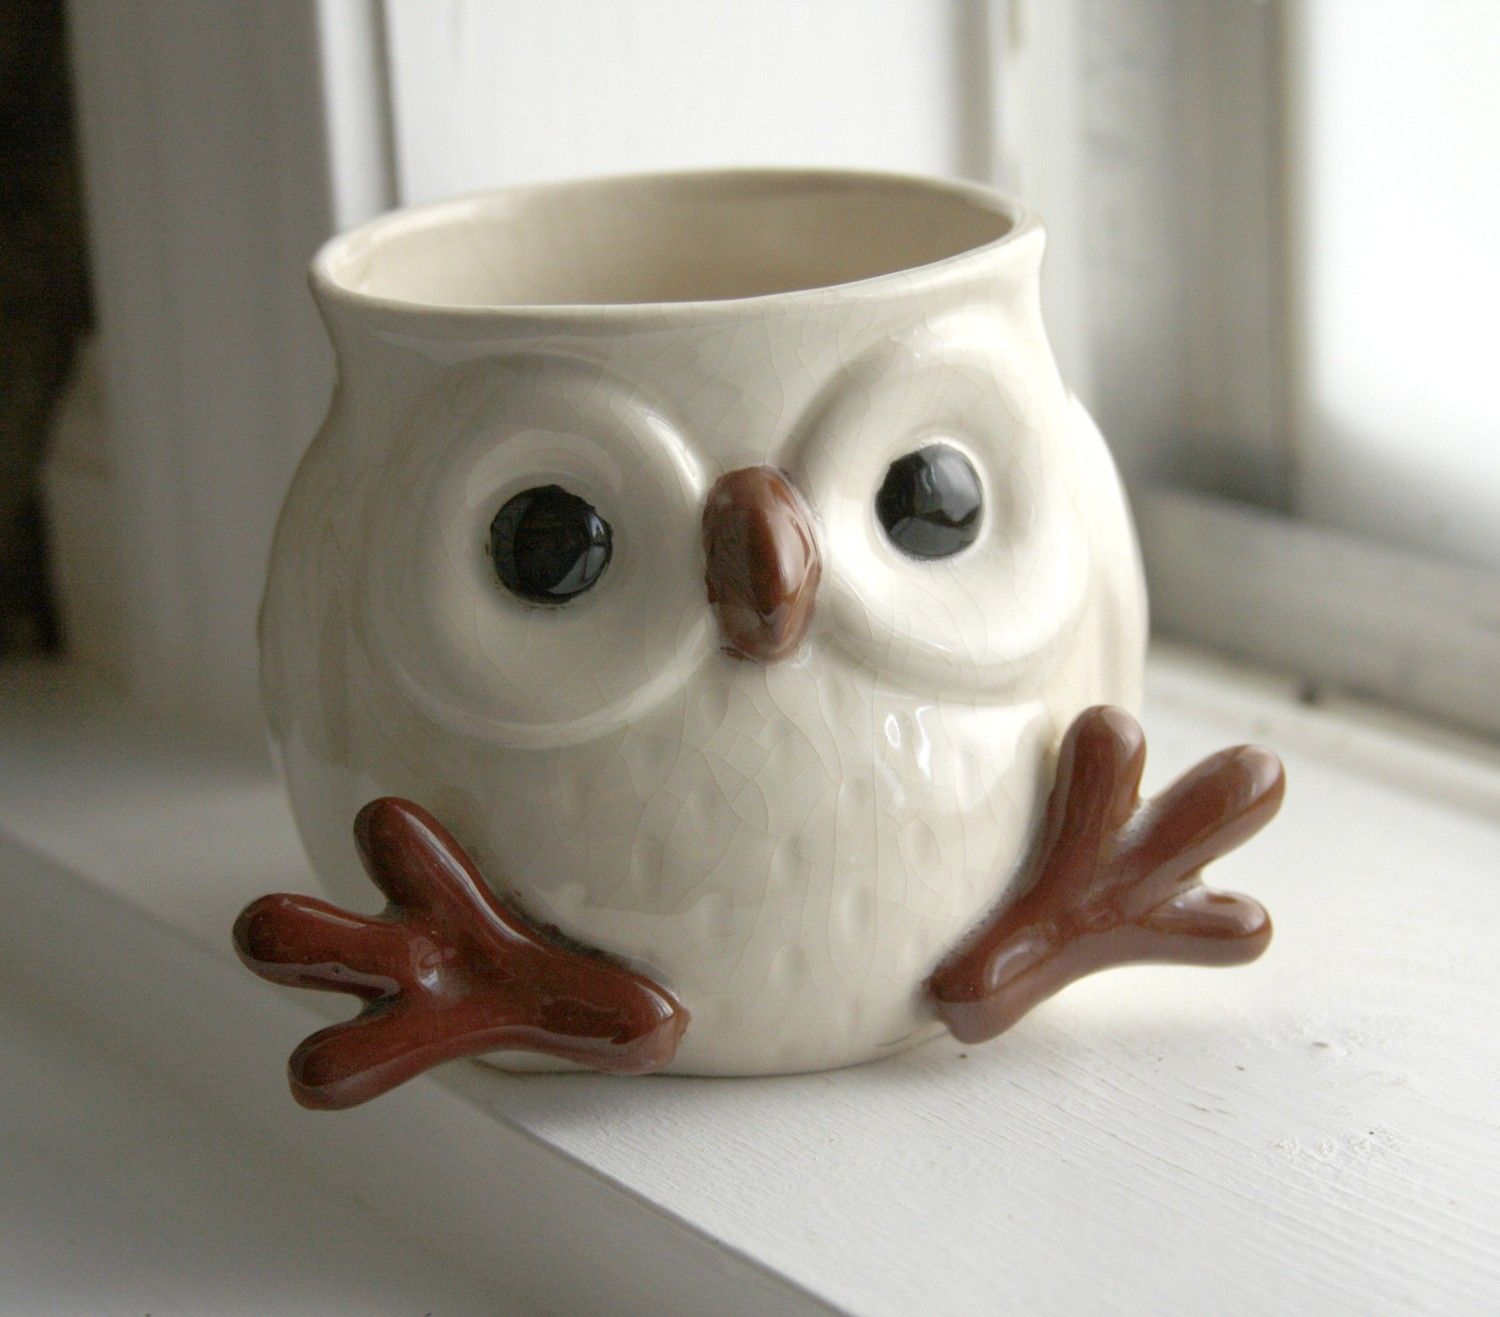 Owl Ceramic Mug Snowy Owl Mug With Feet So Adorable Interesting And